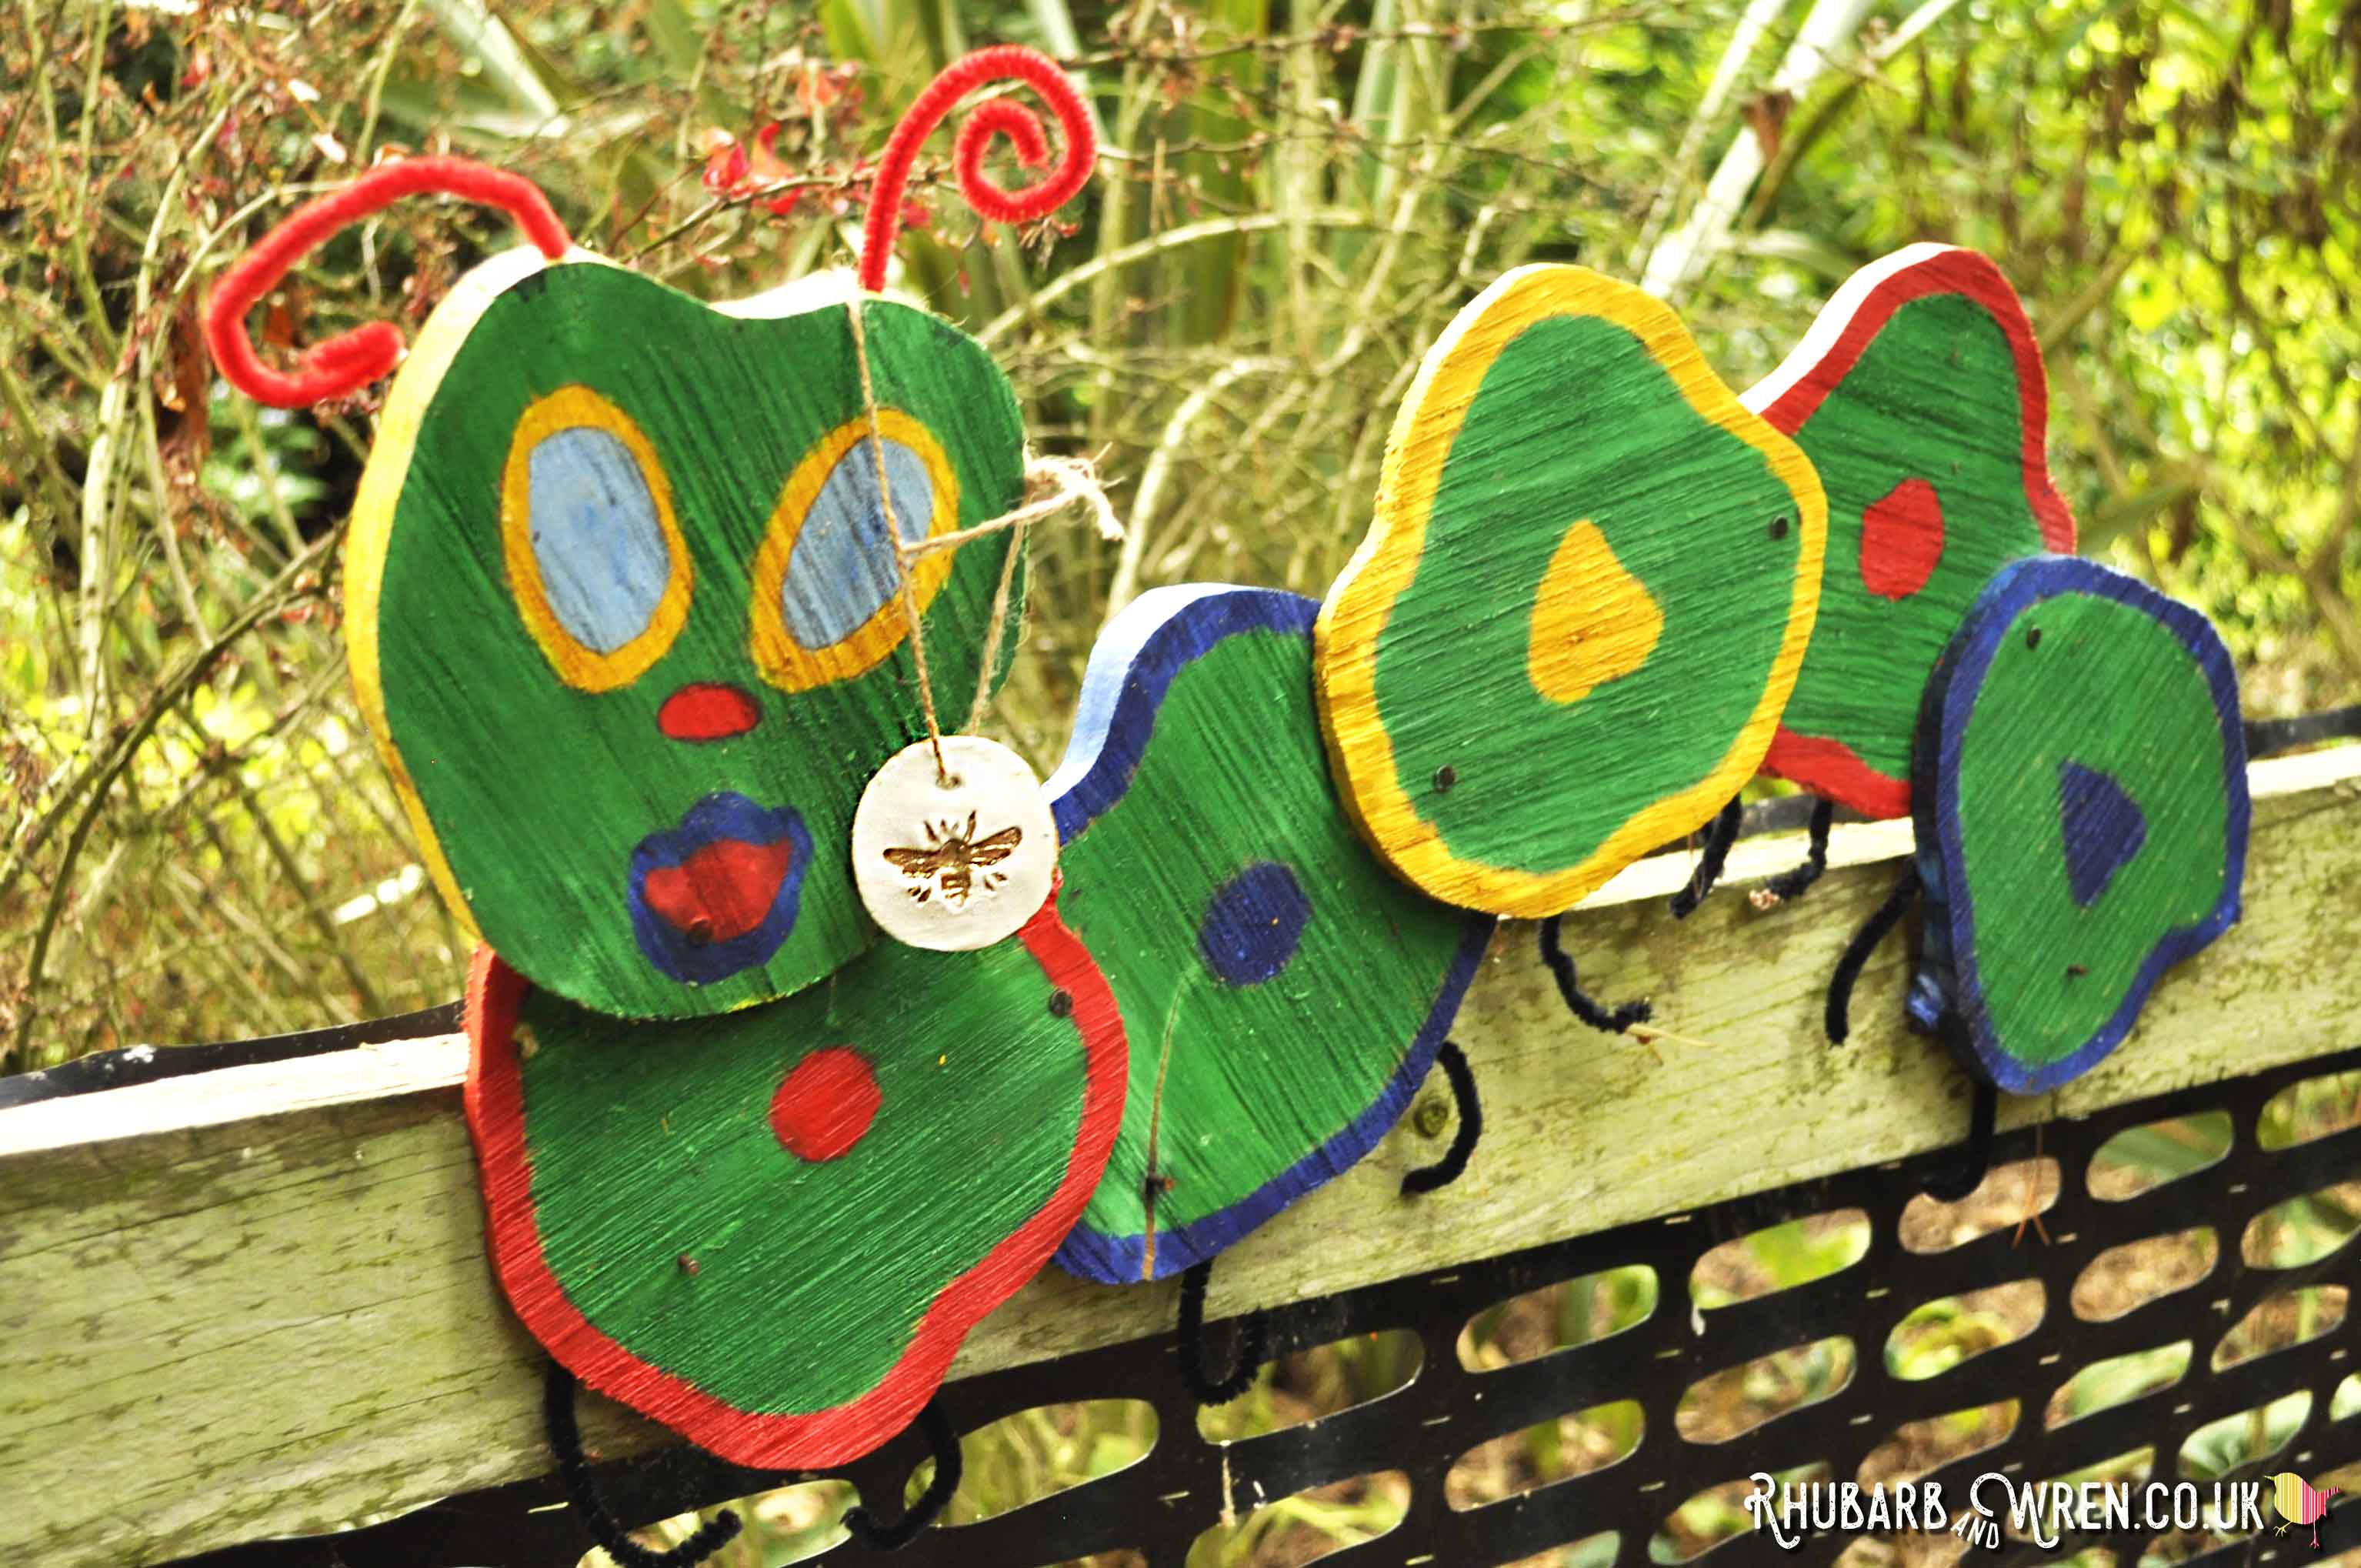 Wooden caterpillar decoration used in kids treasure hunt.